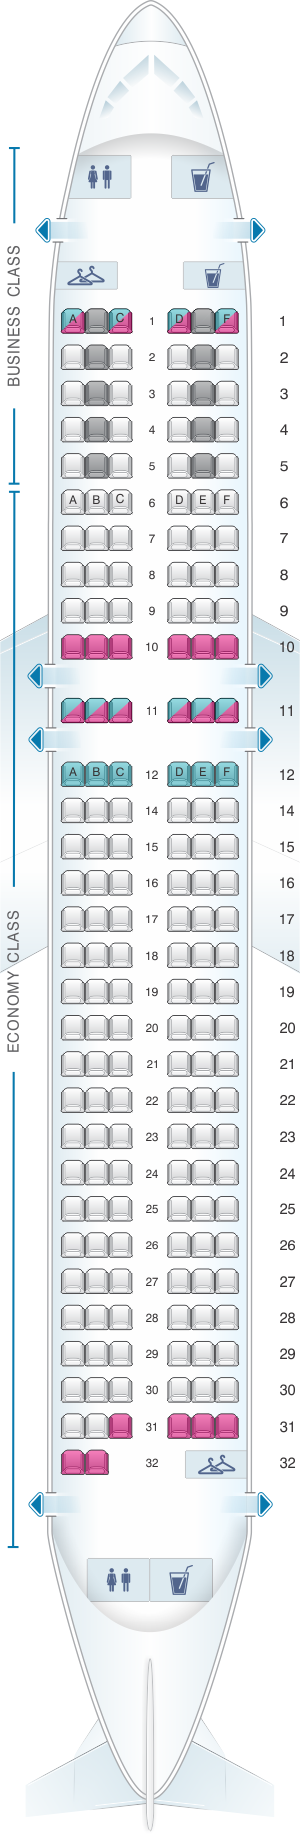 Seat map for Air France Airbus A320 Europe V2